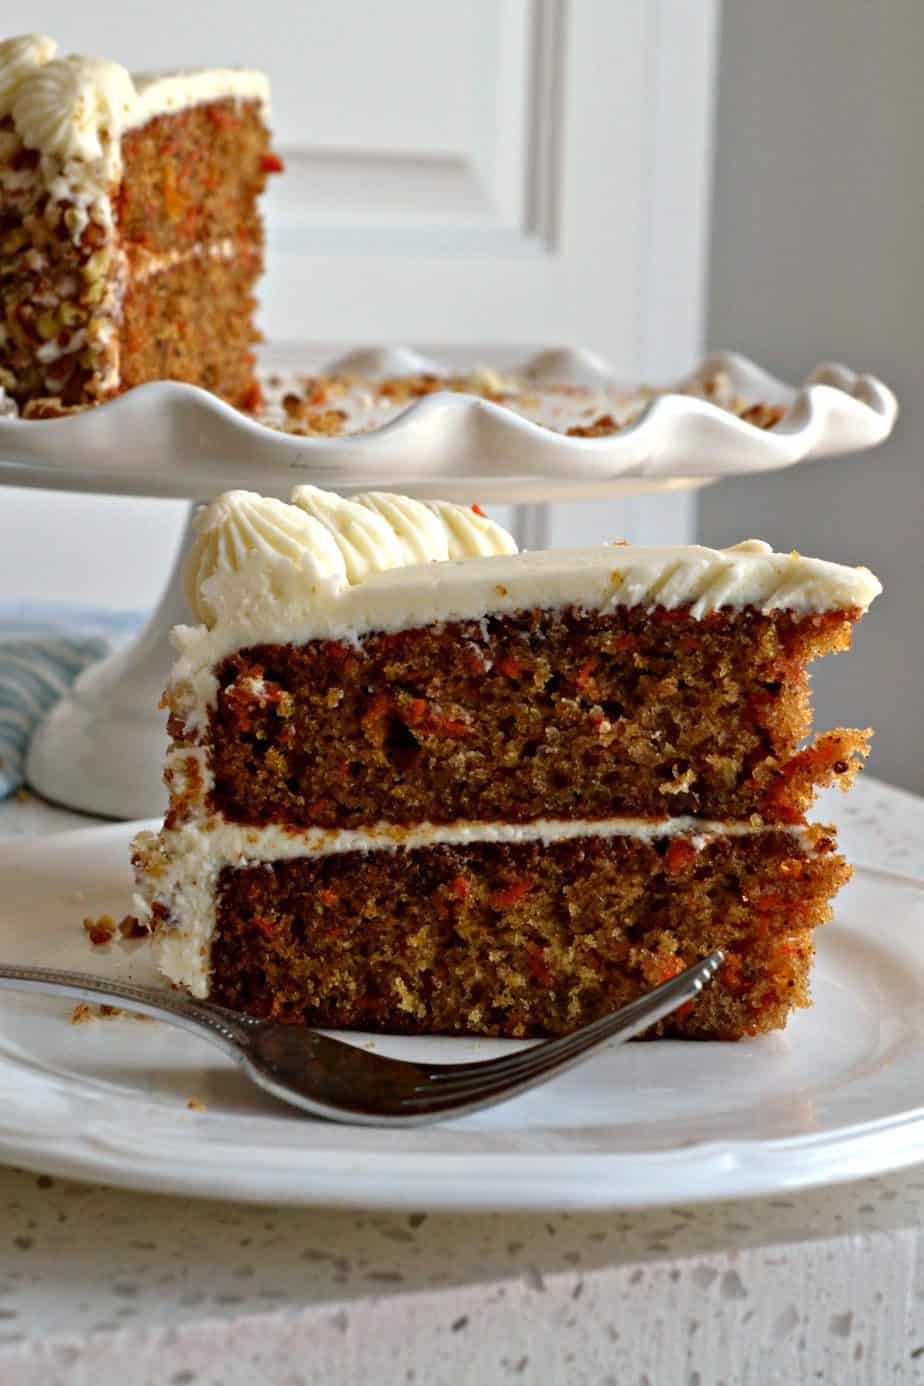 A delectable moist holiday carrot cake with a silky cream cheese frosting.